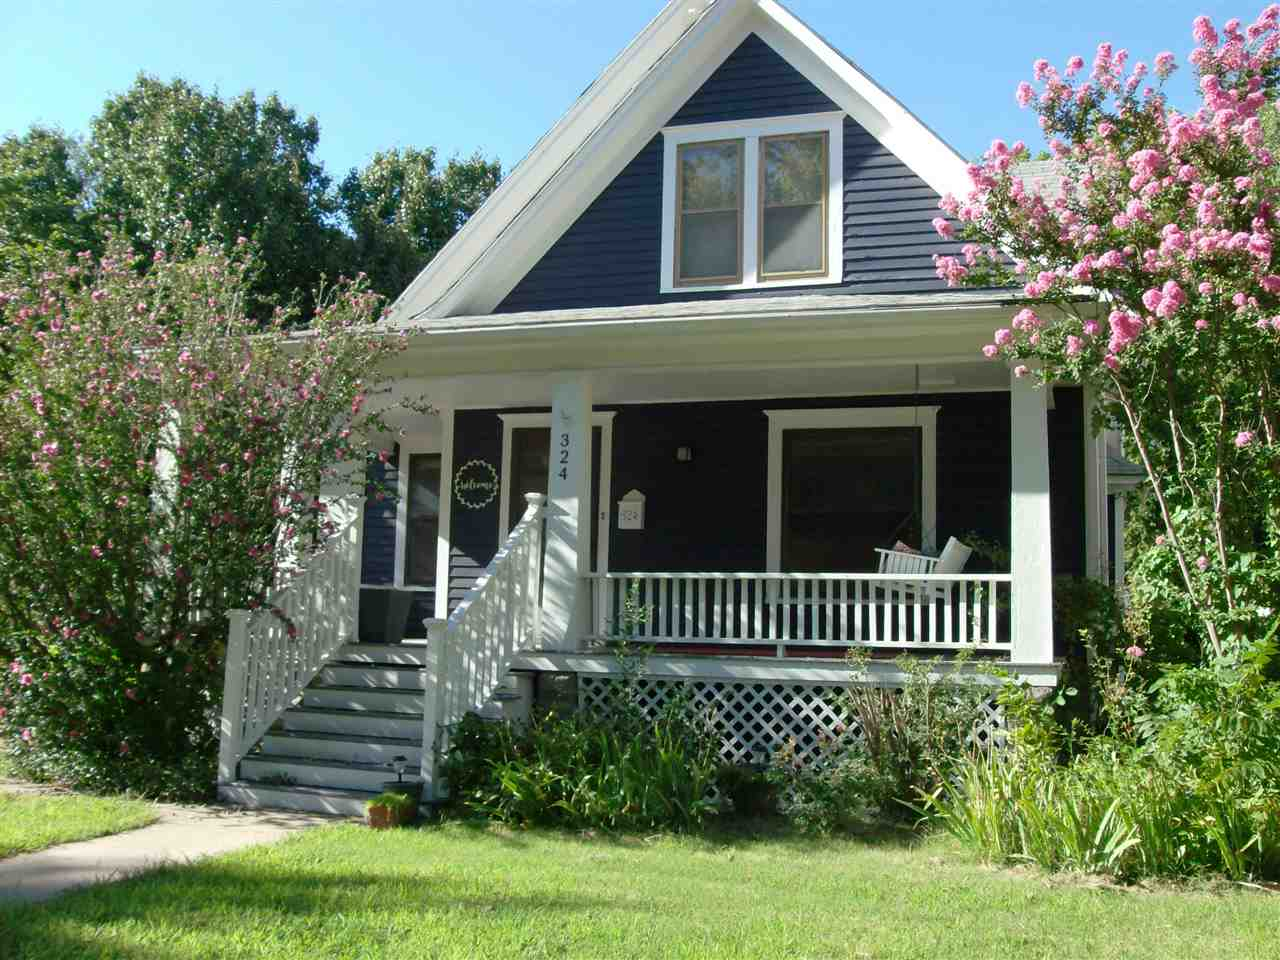 Charming home in Newton's Historical District! Enjoy having coffee on the front porch swing as you prepare for the day. Enter into large living room with wood floors, original woodwork through-out and radiator heat. Dining room is large enough for family gatherings and a sun porch for extra fun. Foundation repairs were completed in 2012 with a 25 year guarantee.  Call agent with questions.